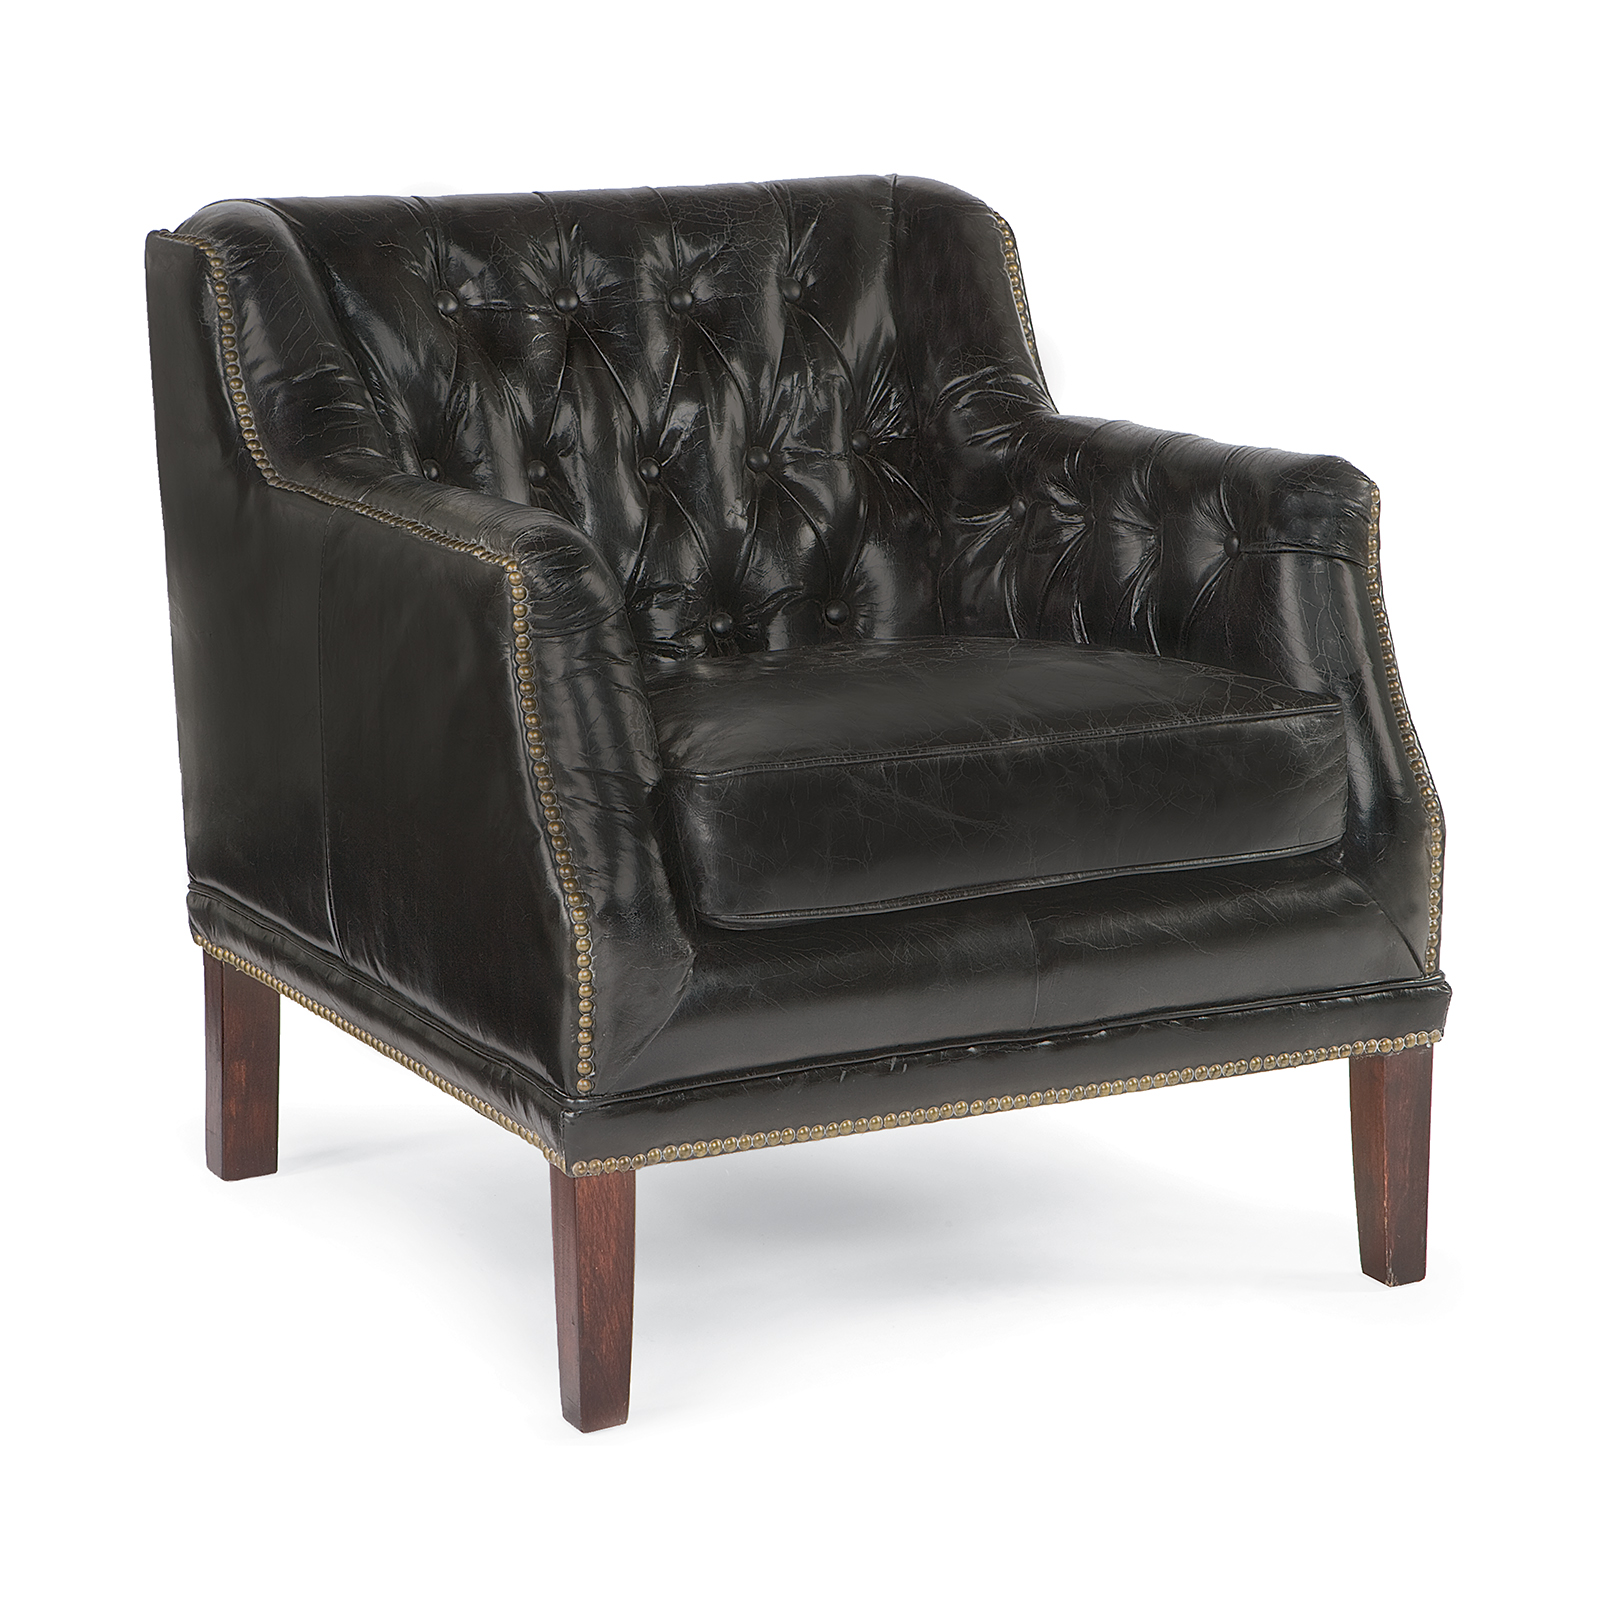 Leather Equestrian Chair | Regina Andrew